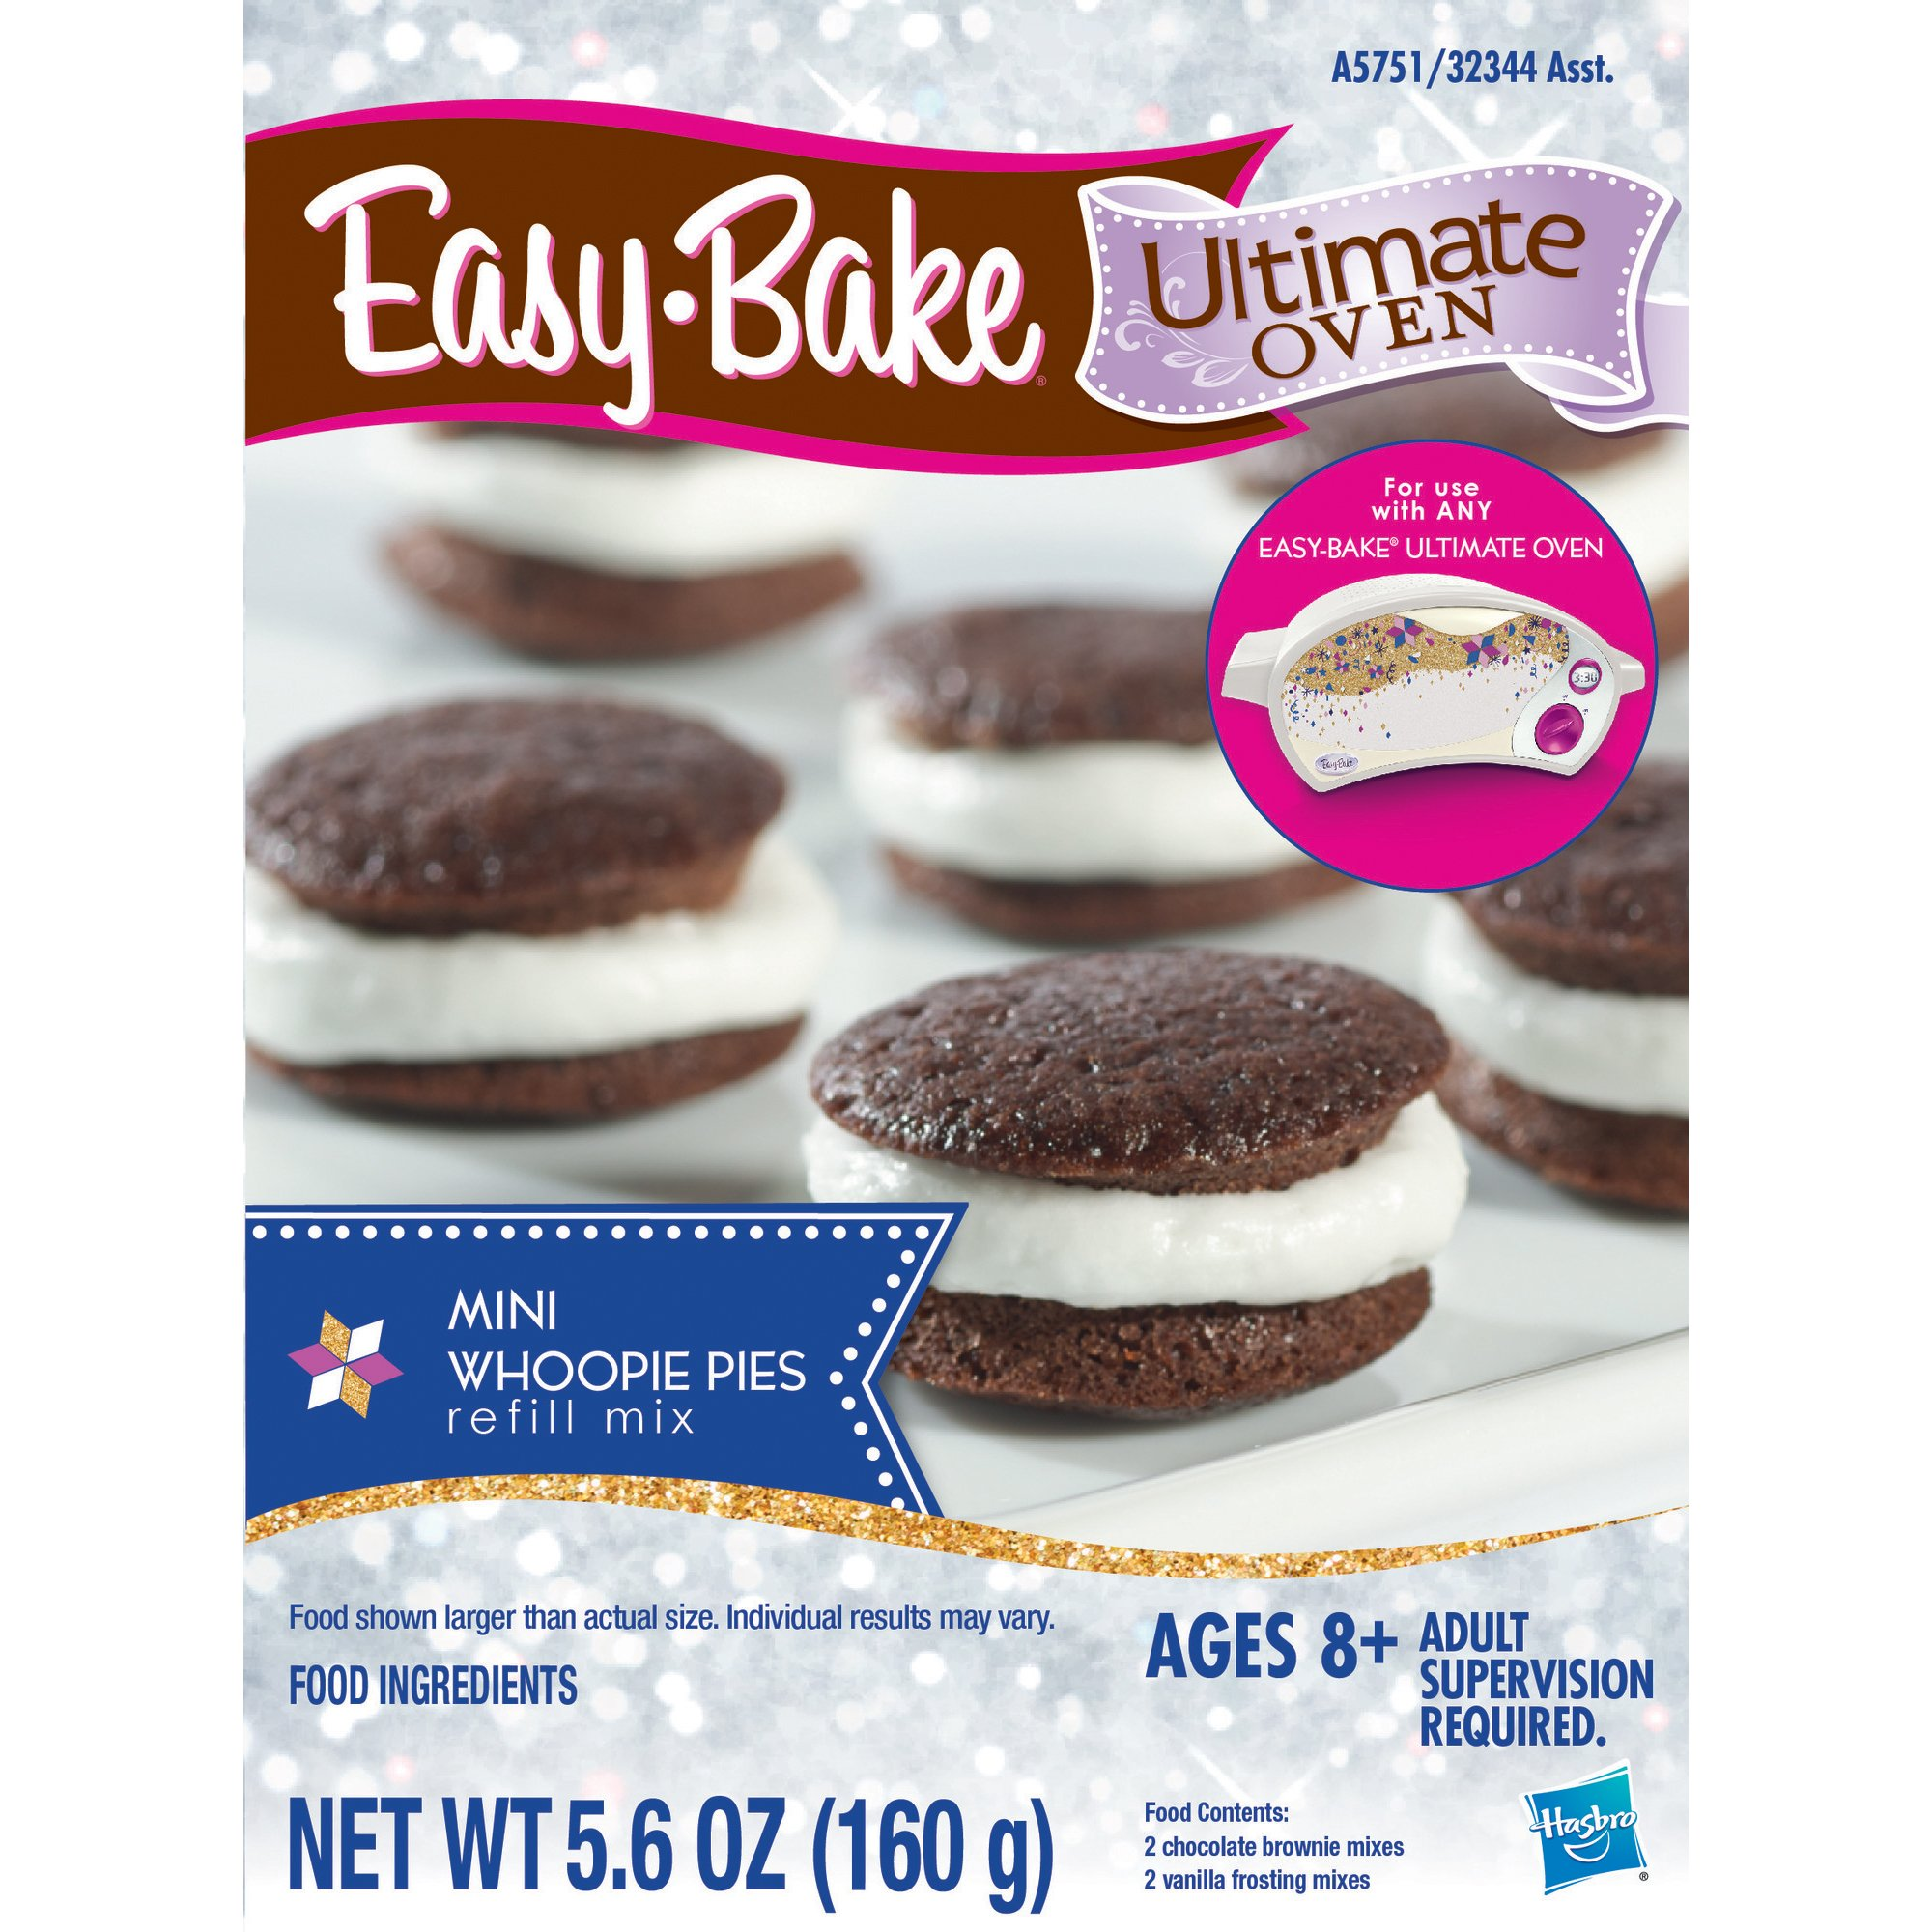 Easy-Bake Ultimate Oven Mini Whoopie Pies Refill Pack